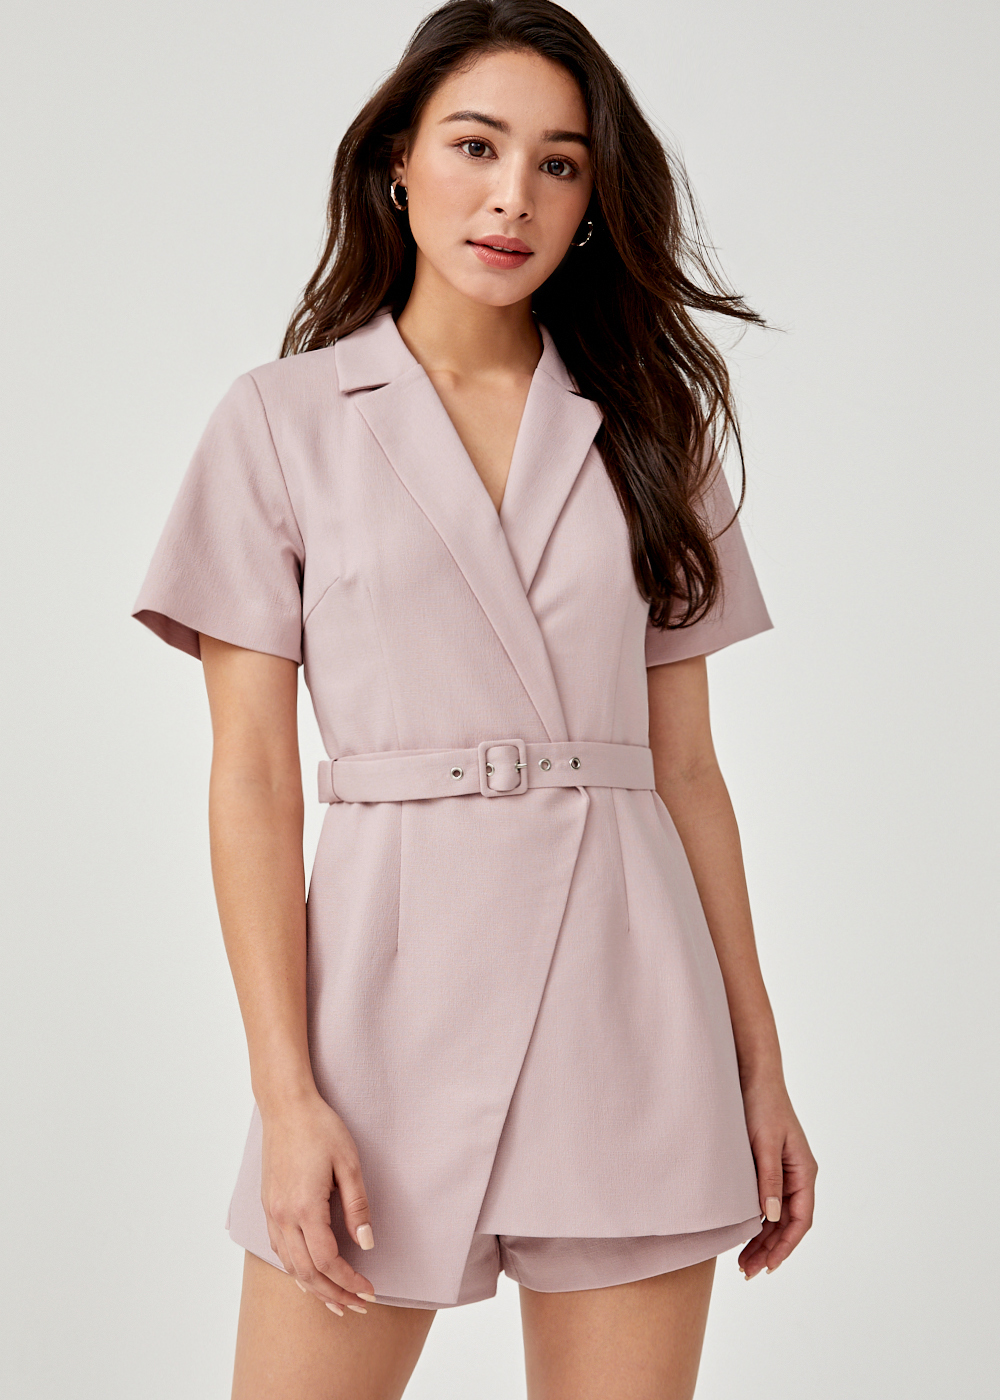 Allyn Belted Tailored Romper